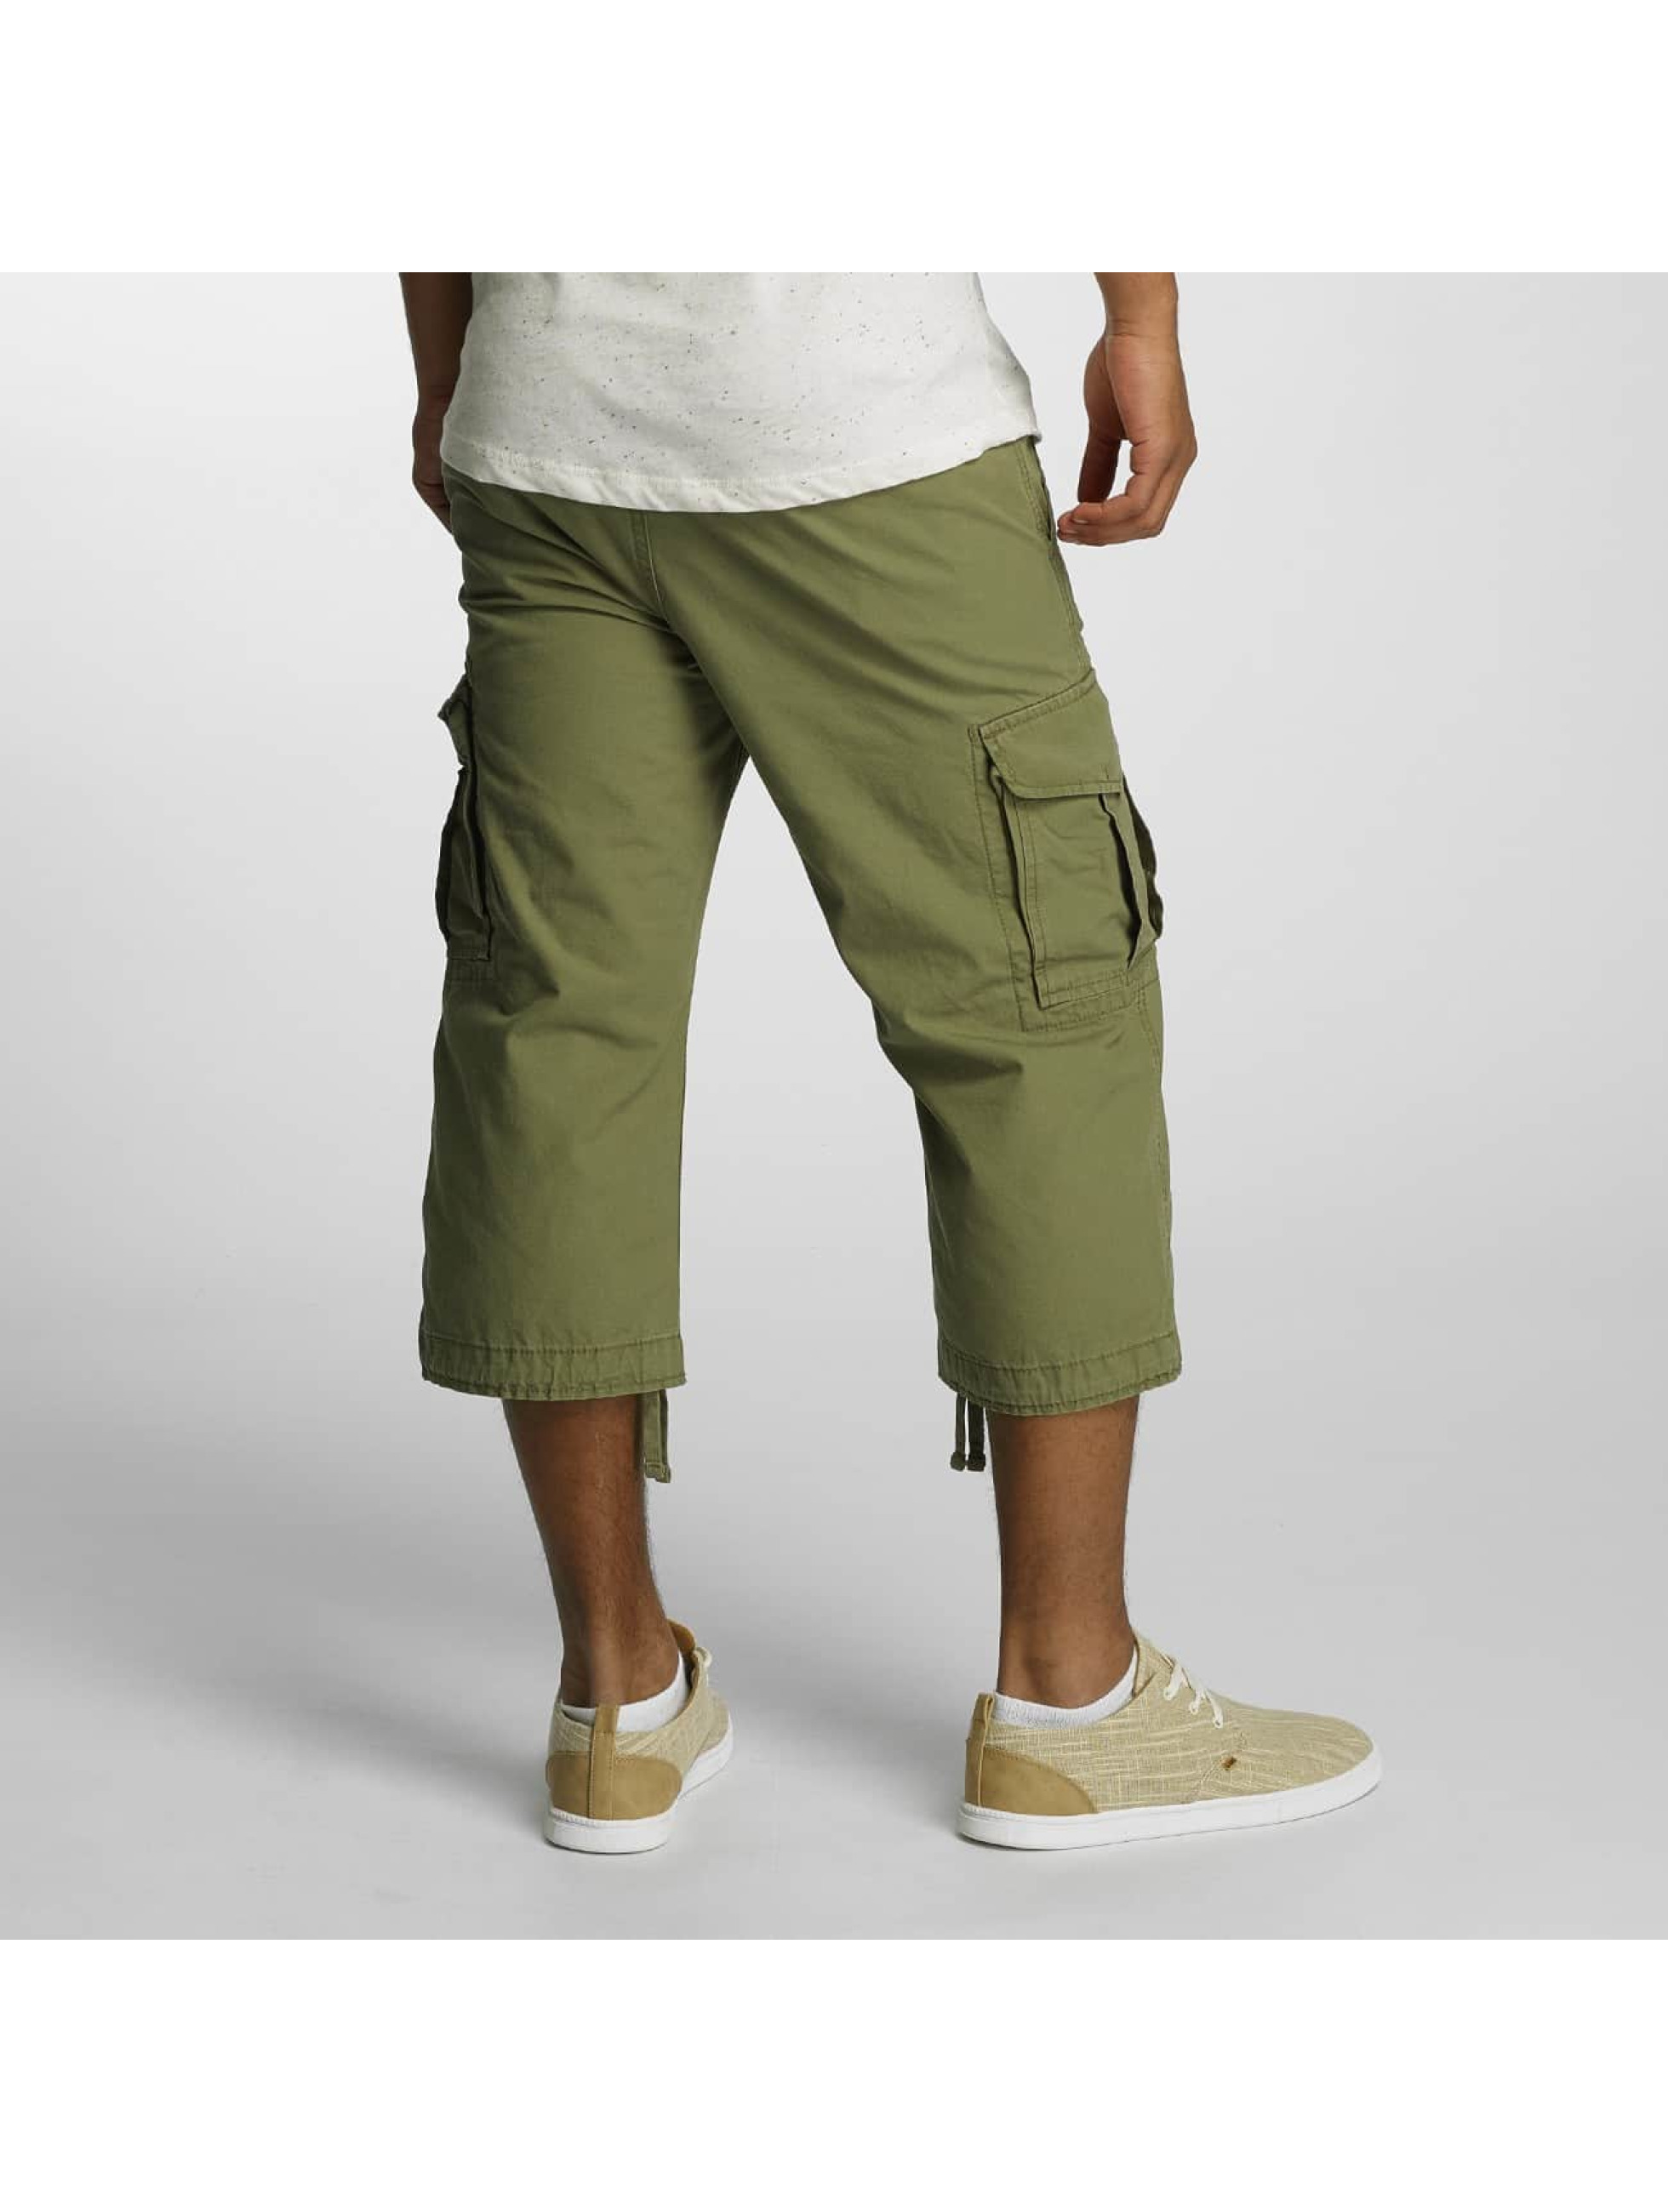 Jack & Jones Shorts jjiPreston oliva